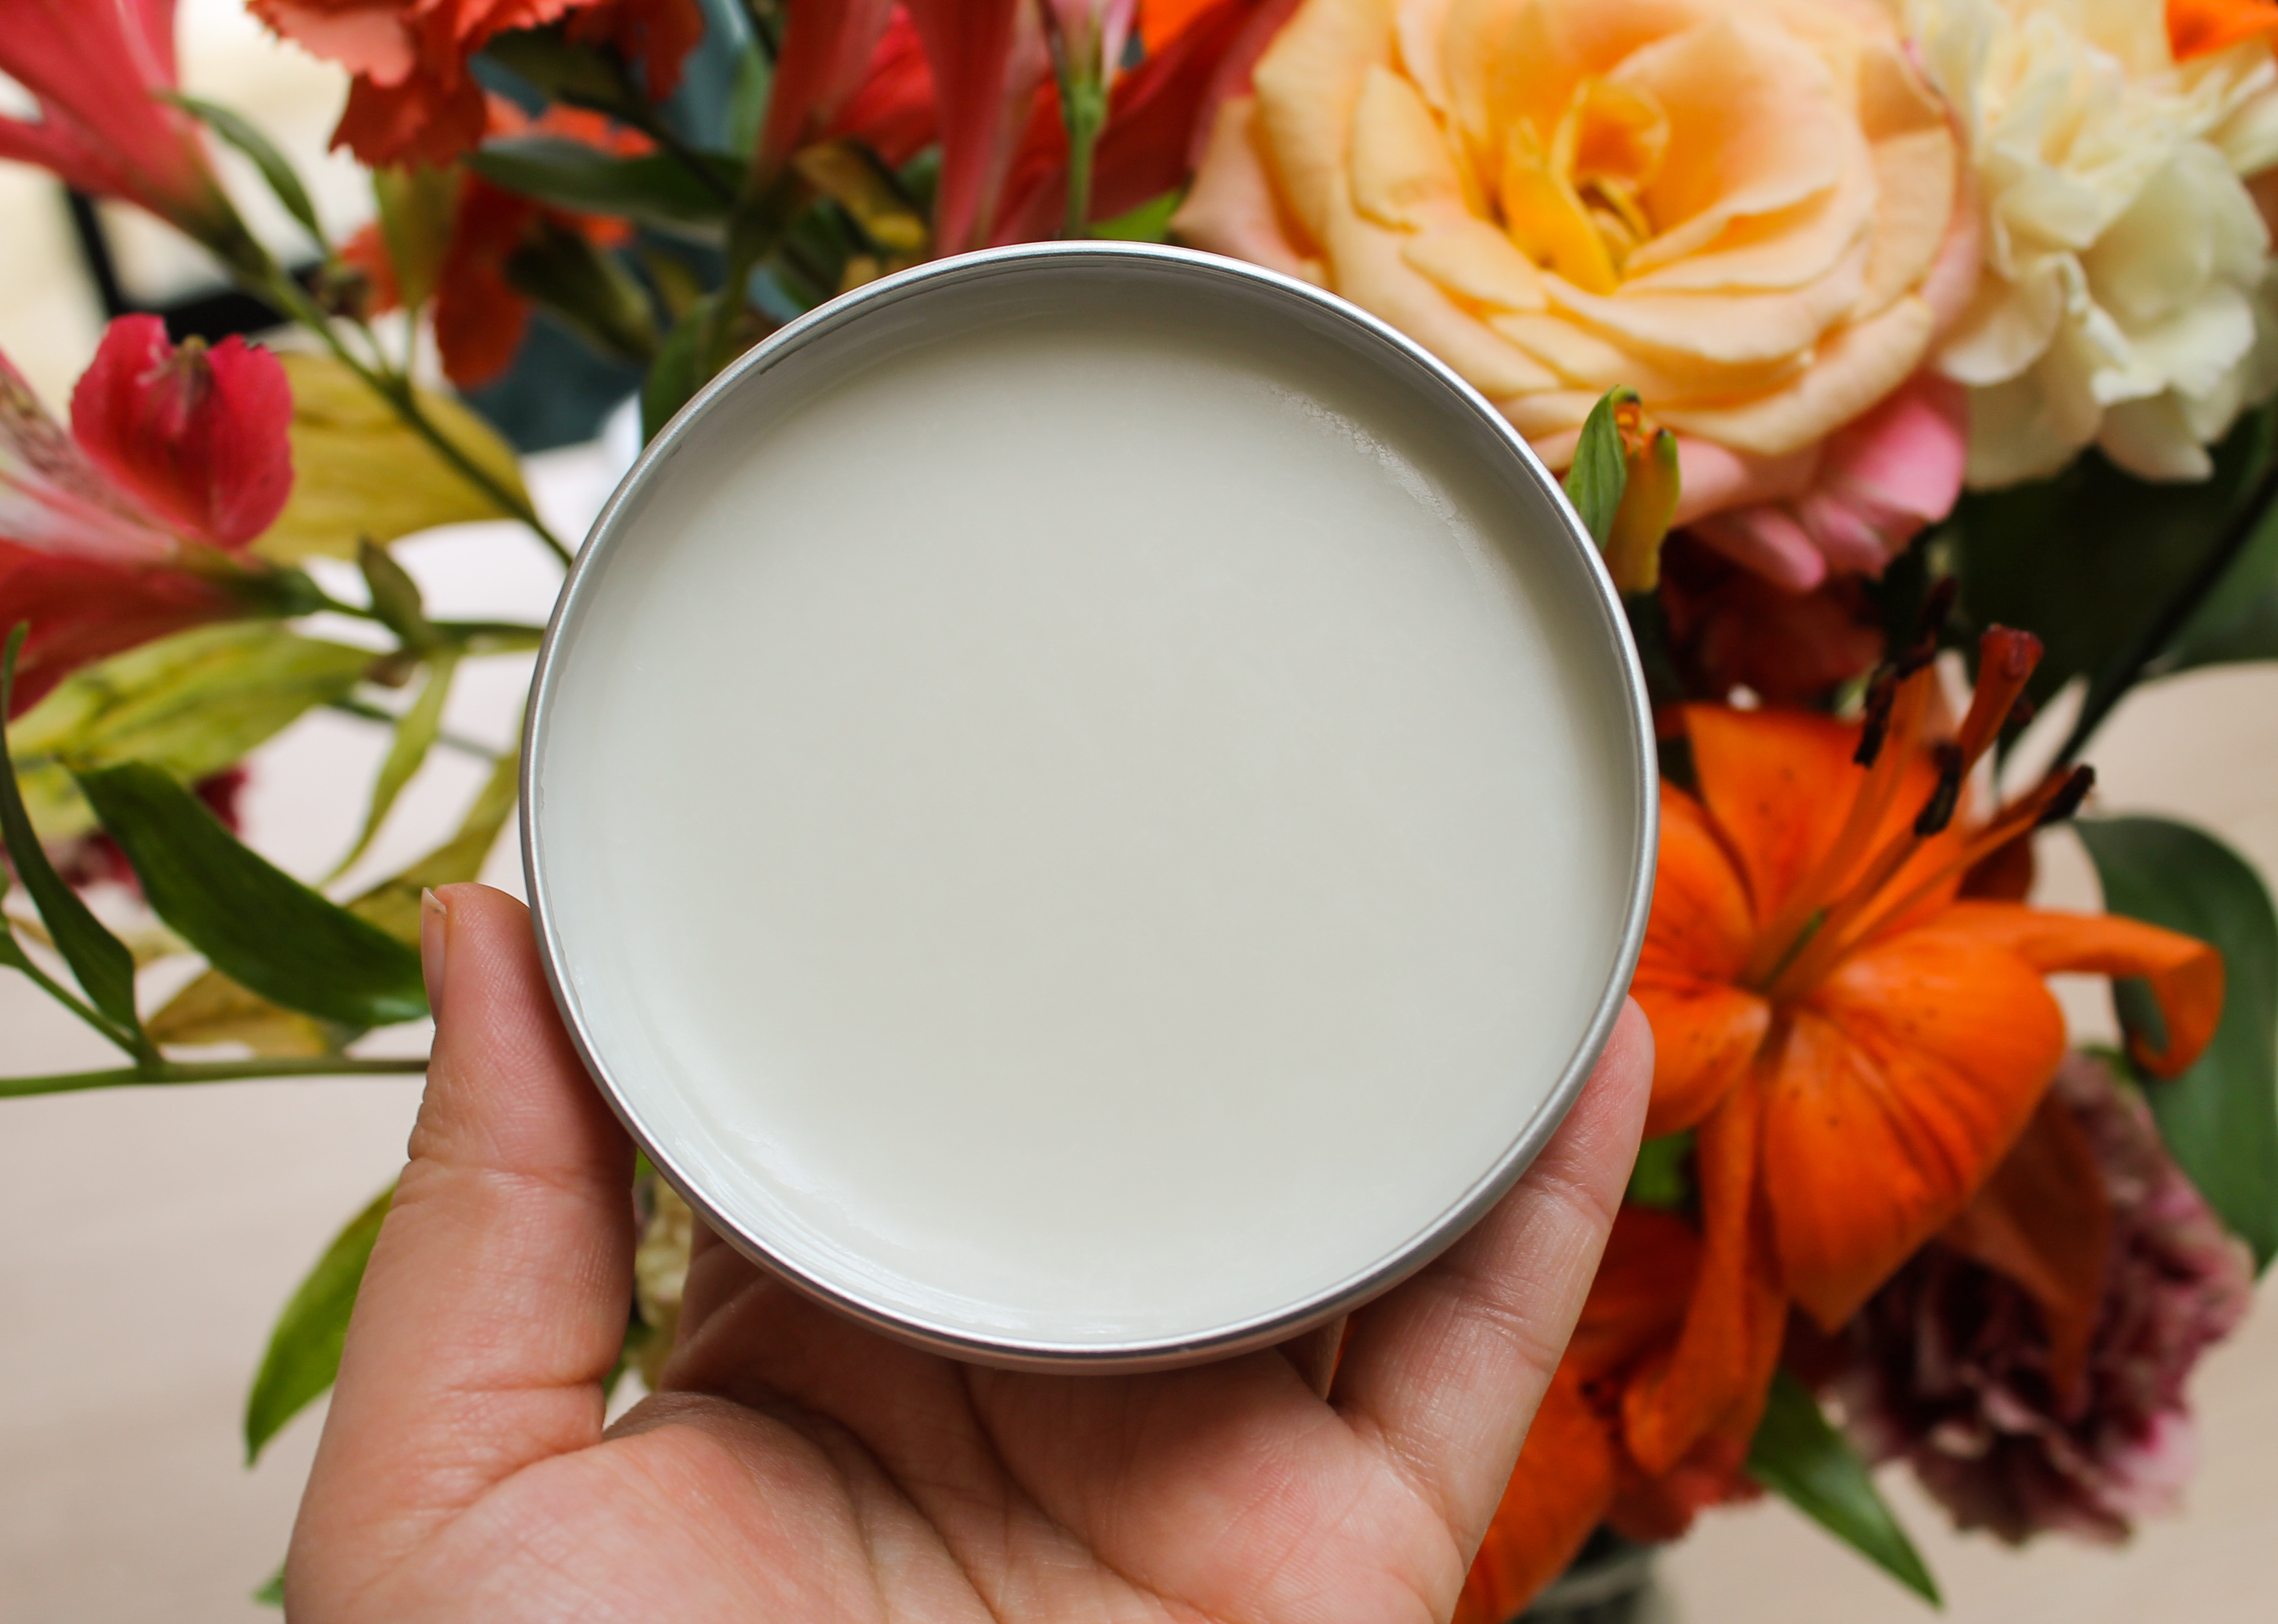 Open tin of Camomile Cleansing Butter against a bouquet of flowersmile Cleansing Butter against a bouquet of flowers